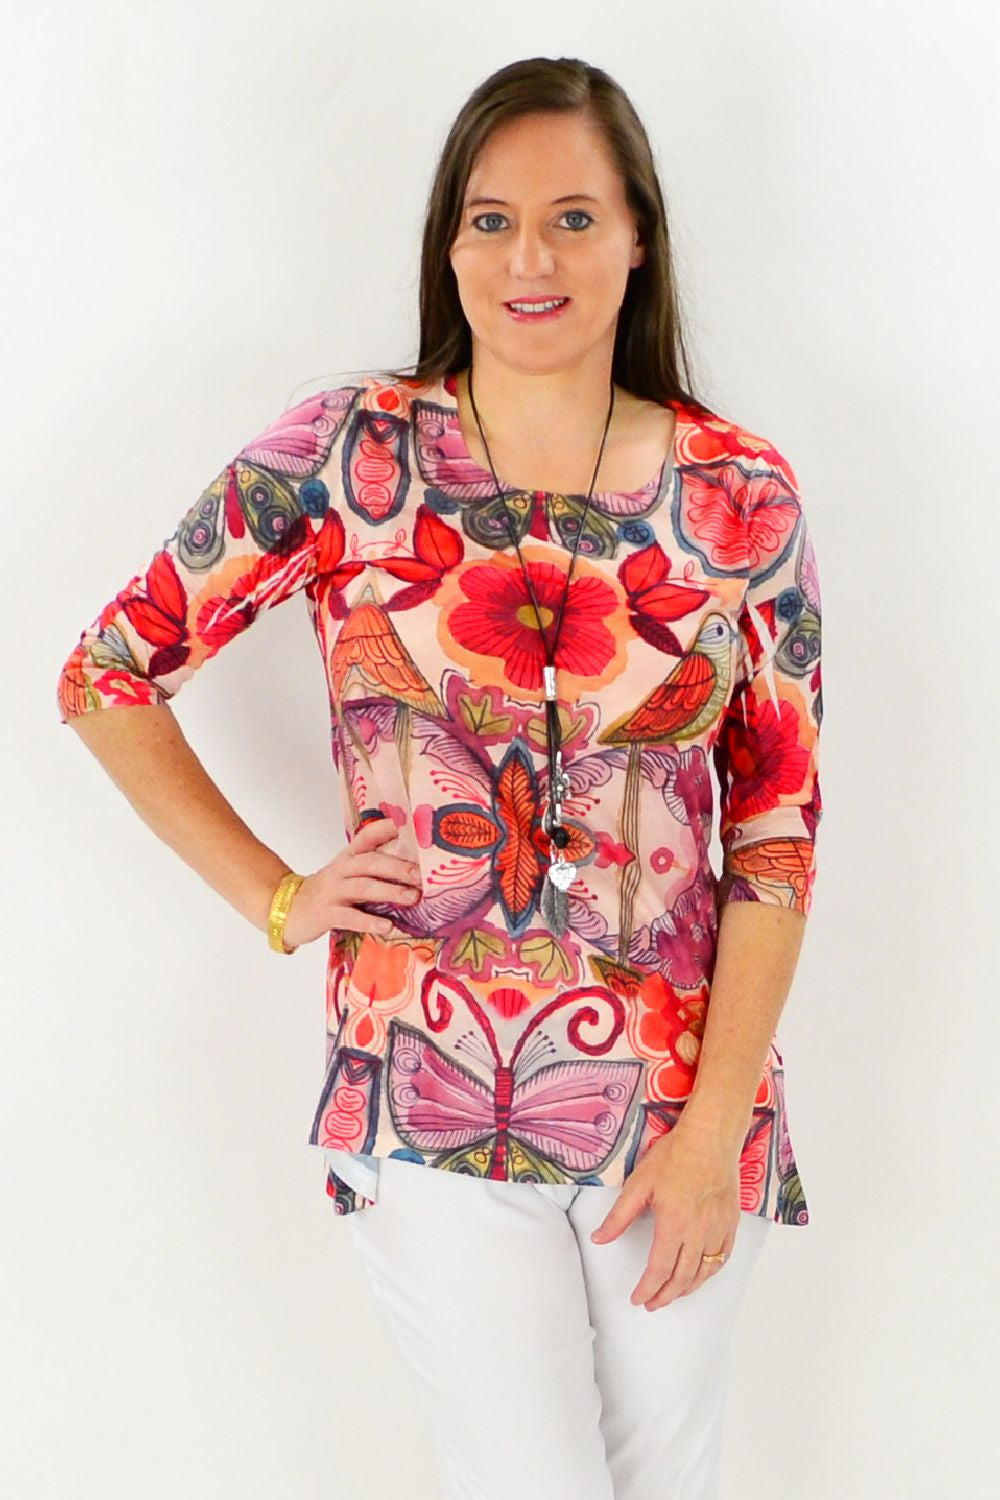 Birds and Flowers Tunic Top - at I Love Tunics @ www.ilovetunics.com = Number One! Tunics Destination